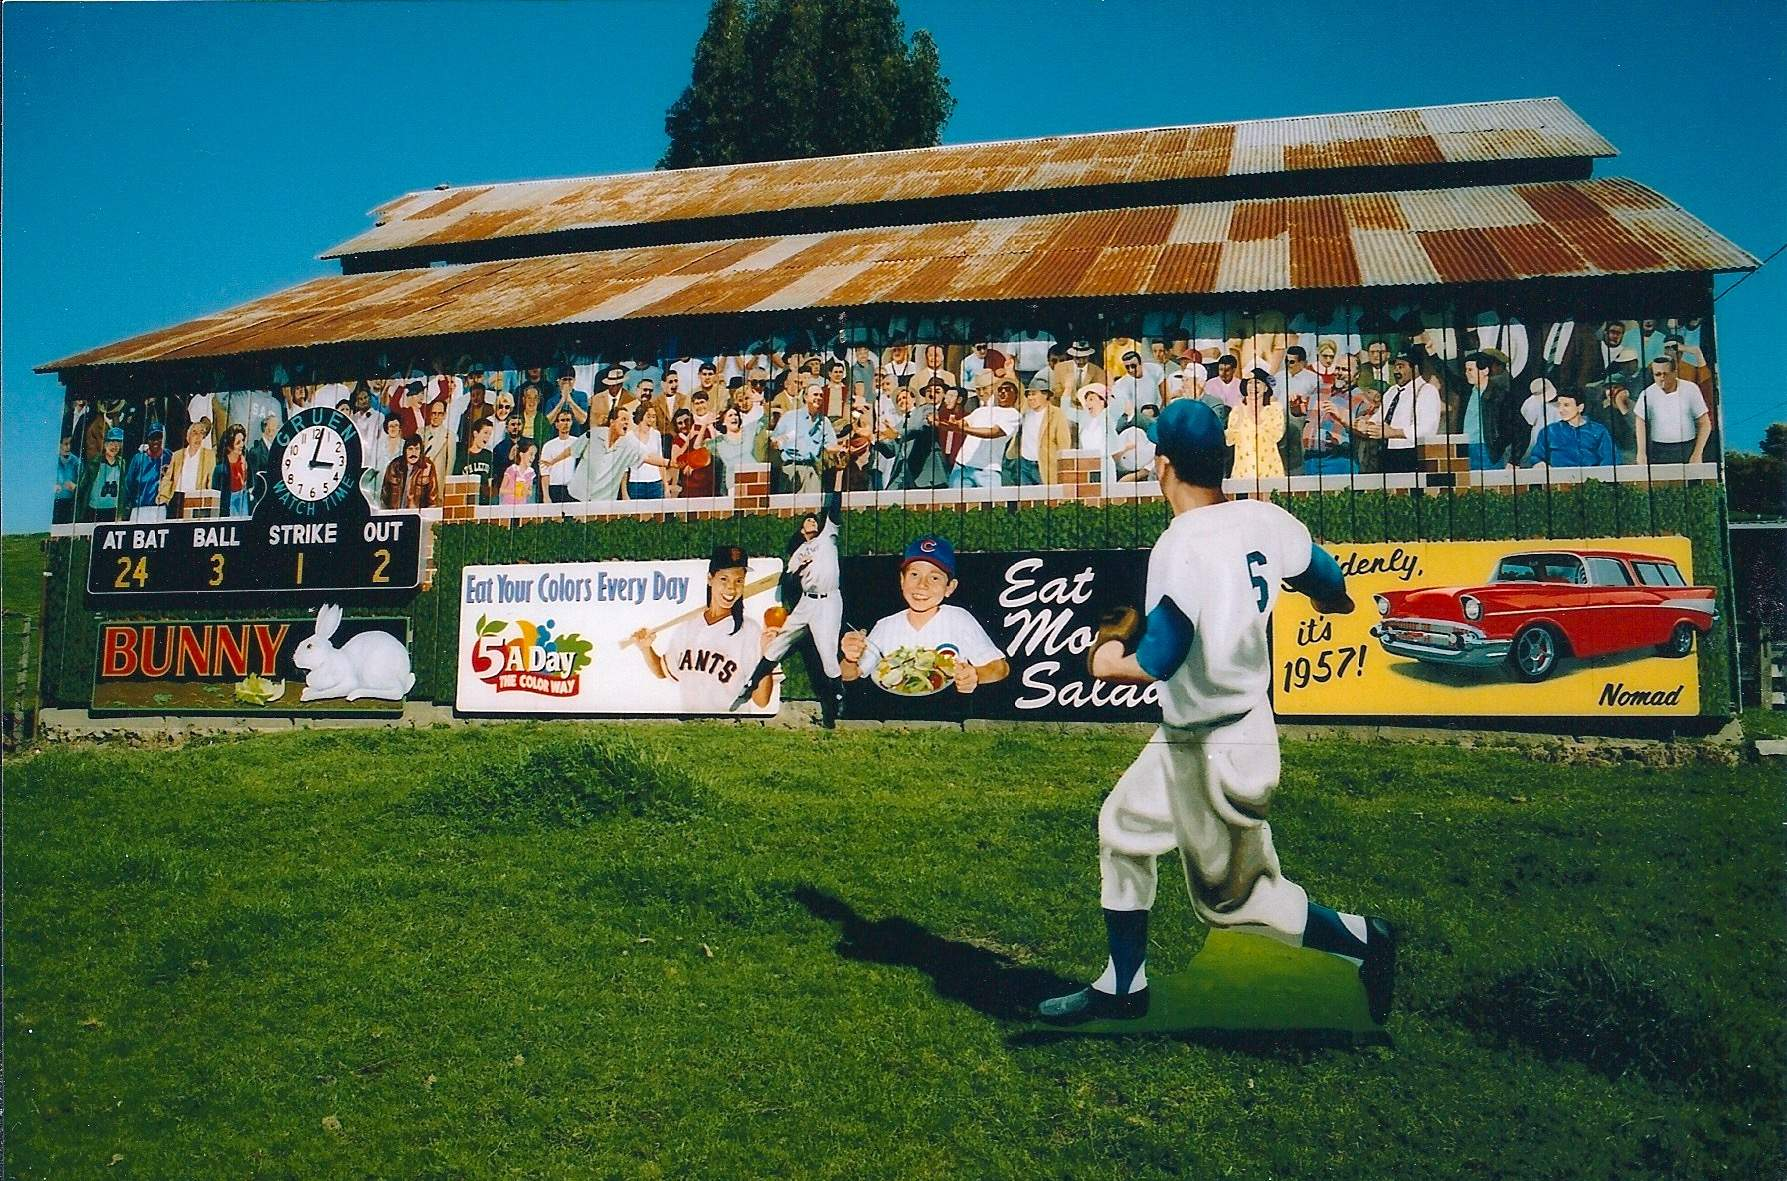 This barn on Highway 101 north of Salinas, Calif., changed its theme from 'Enjoy the Drive' to the baseball scene 'Enjoy the Game' in 1991, and in this image from 2005 when it was restored. It depicts the golden era of baseball from the 1940's and 50's.